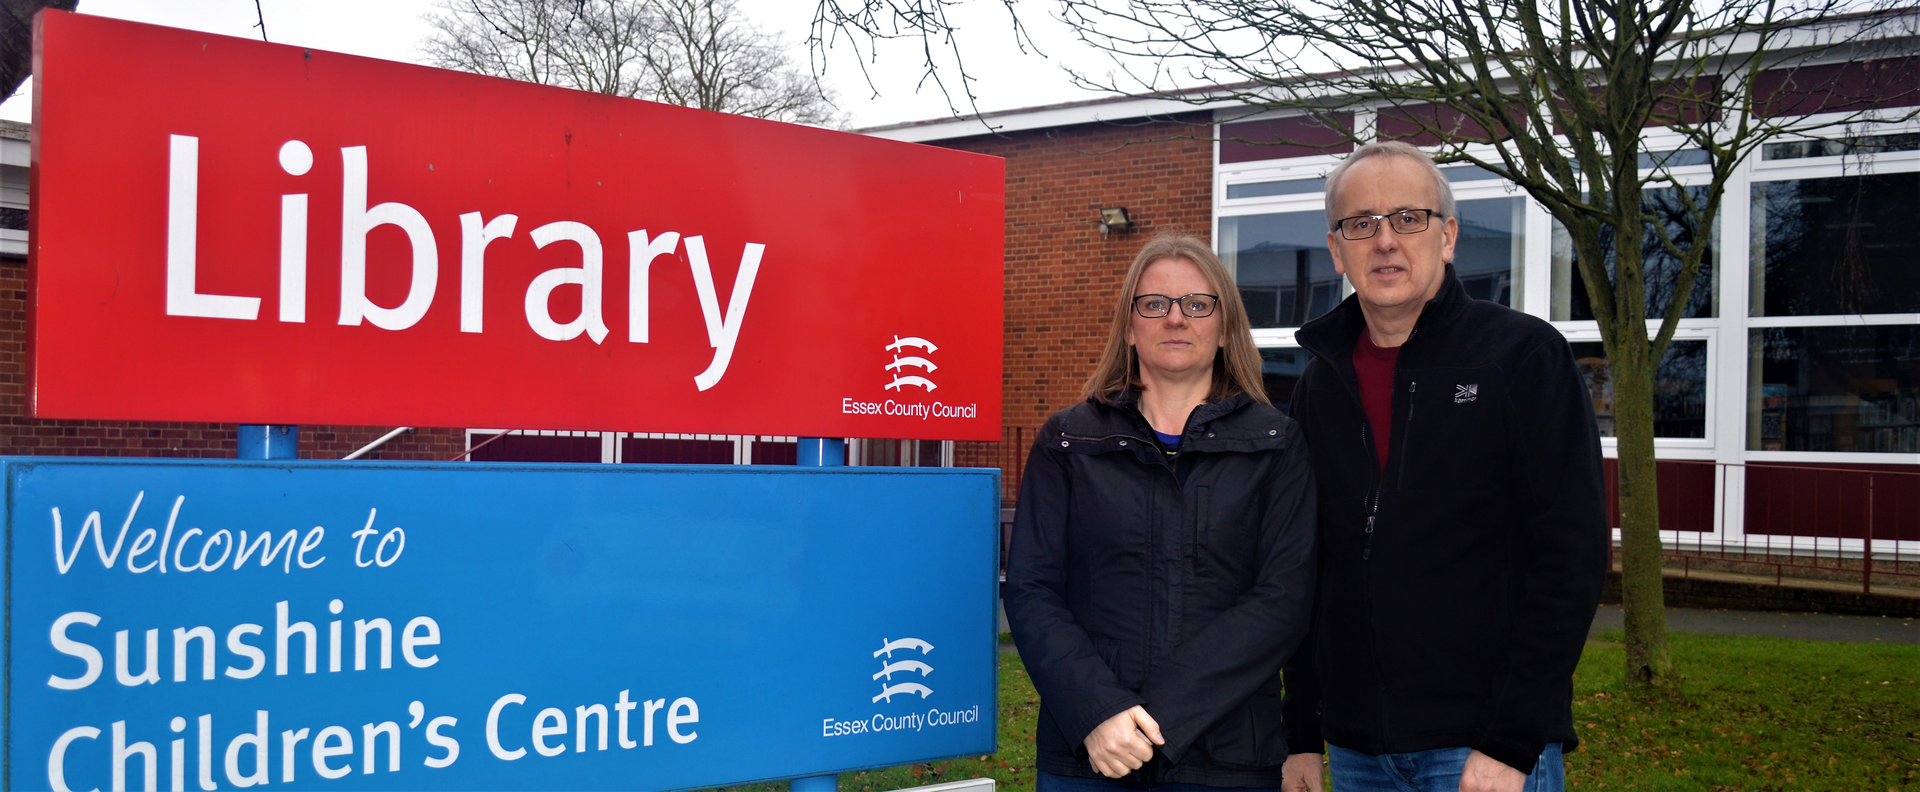 Sarah Cloke and Cllr David Kendall campaigning against Essex Library closures (Karen Chilvers)